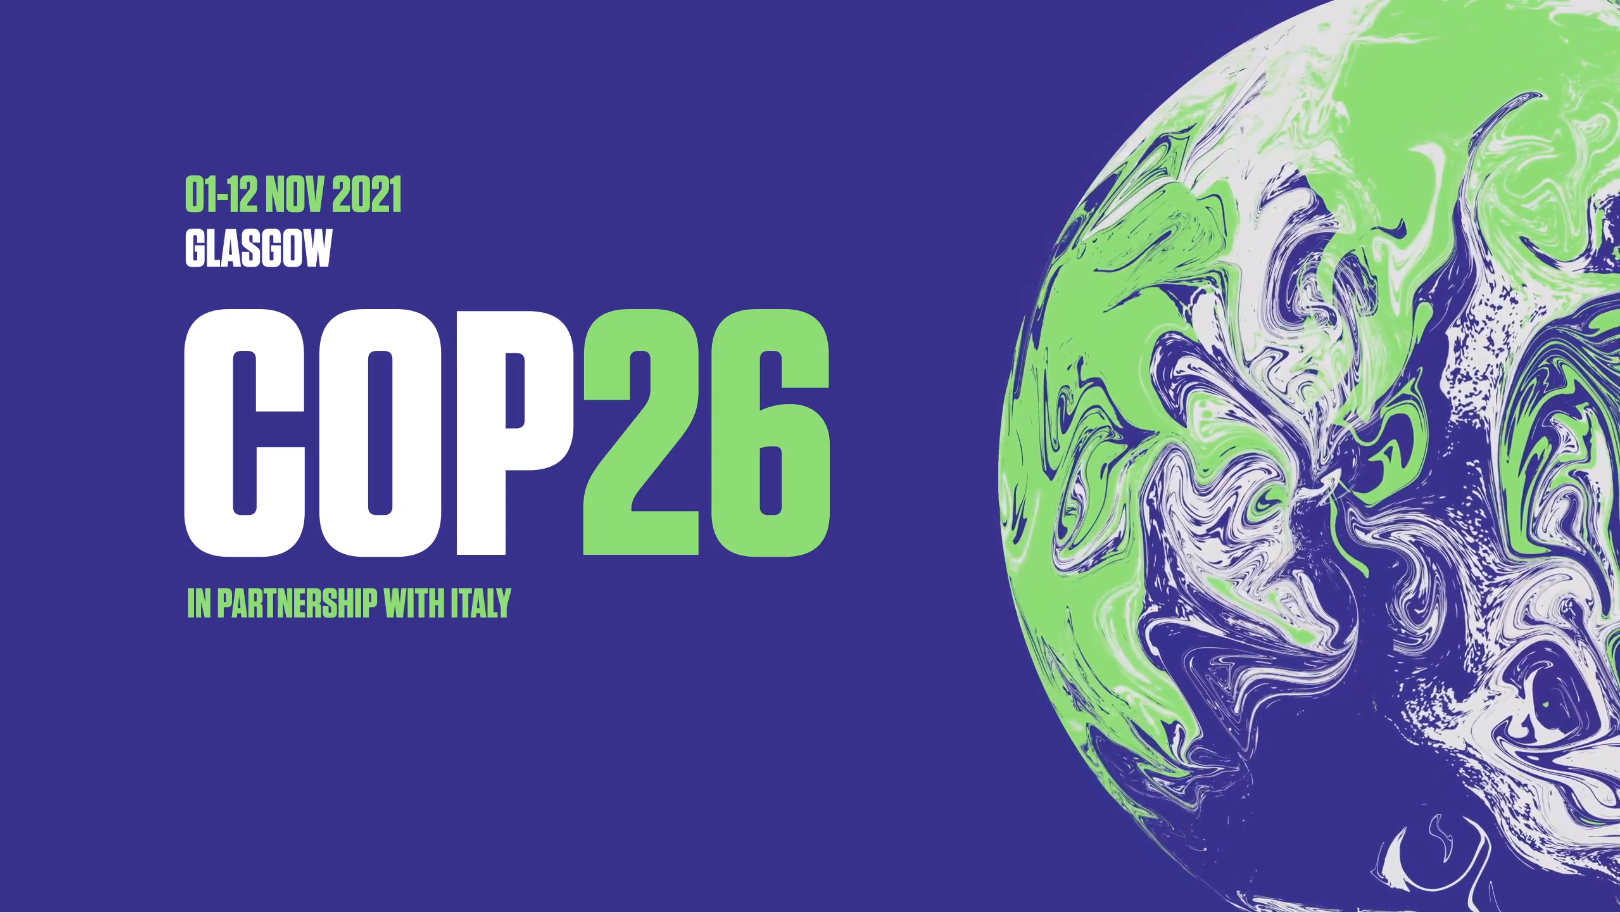 Image of COP26 in Glasgow